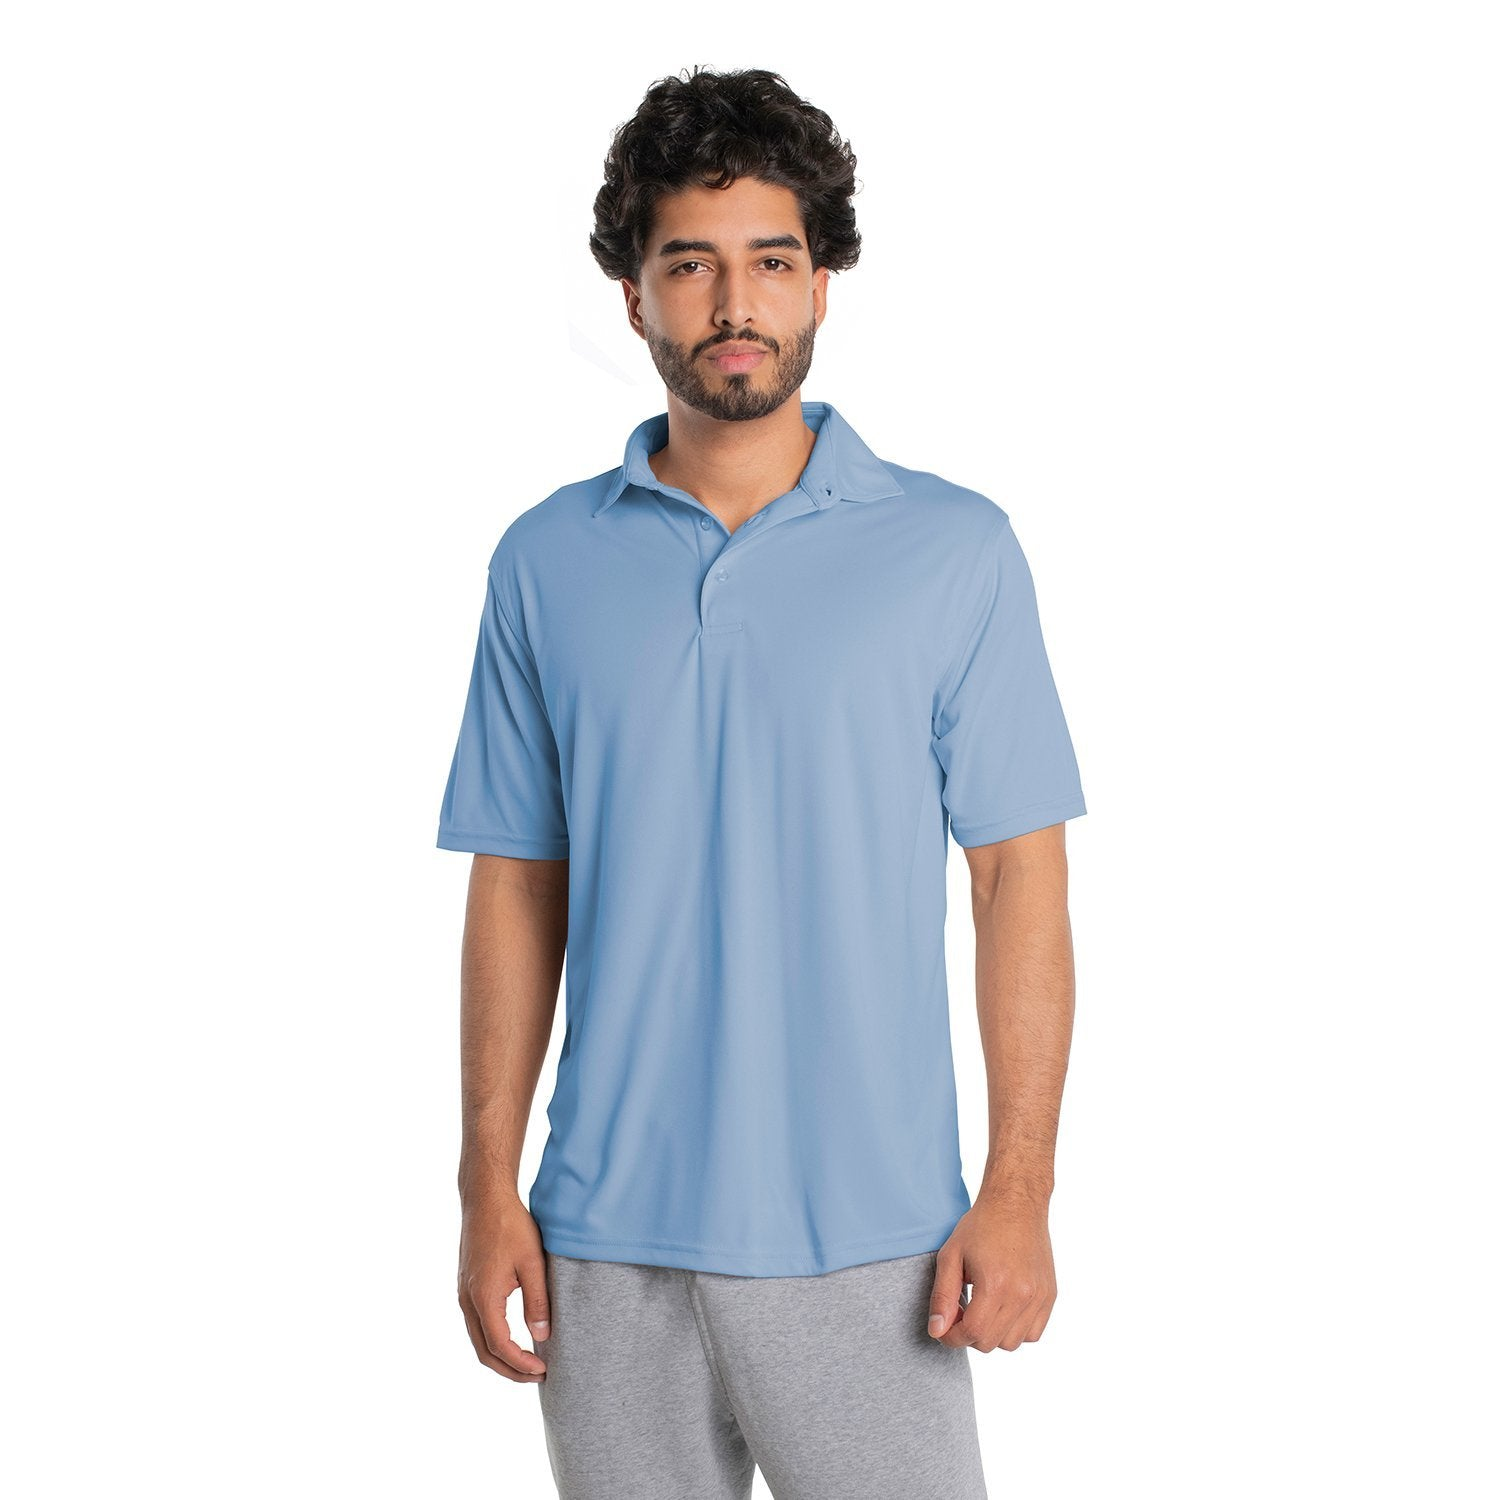 M900CB Solar Polo Short Sleeve - Columbia Blue